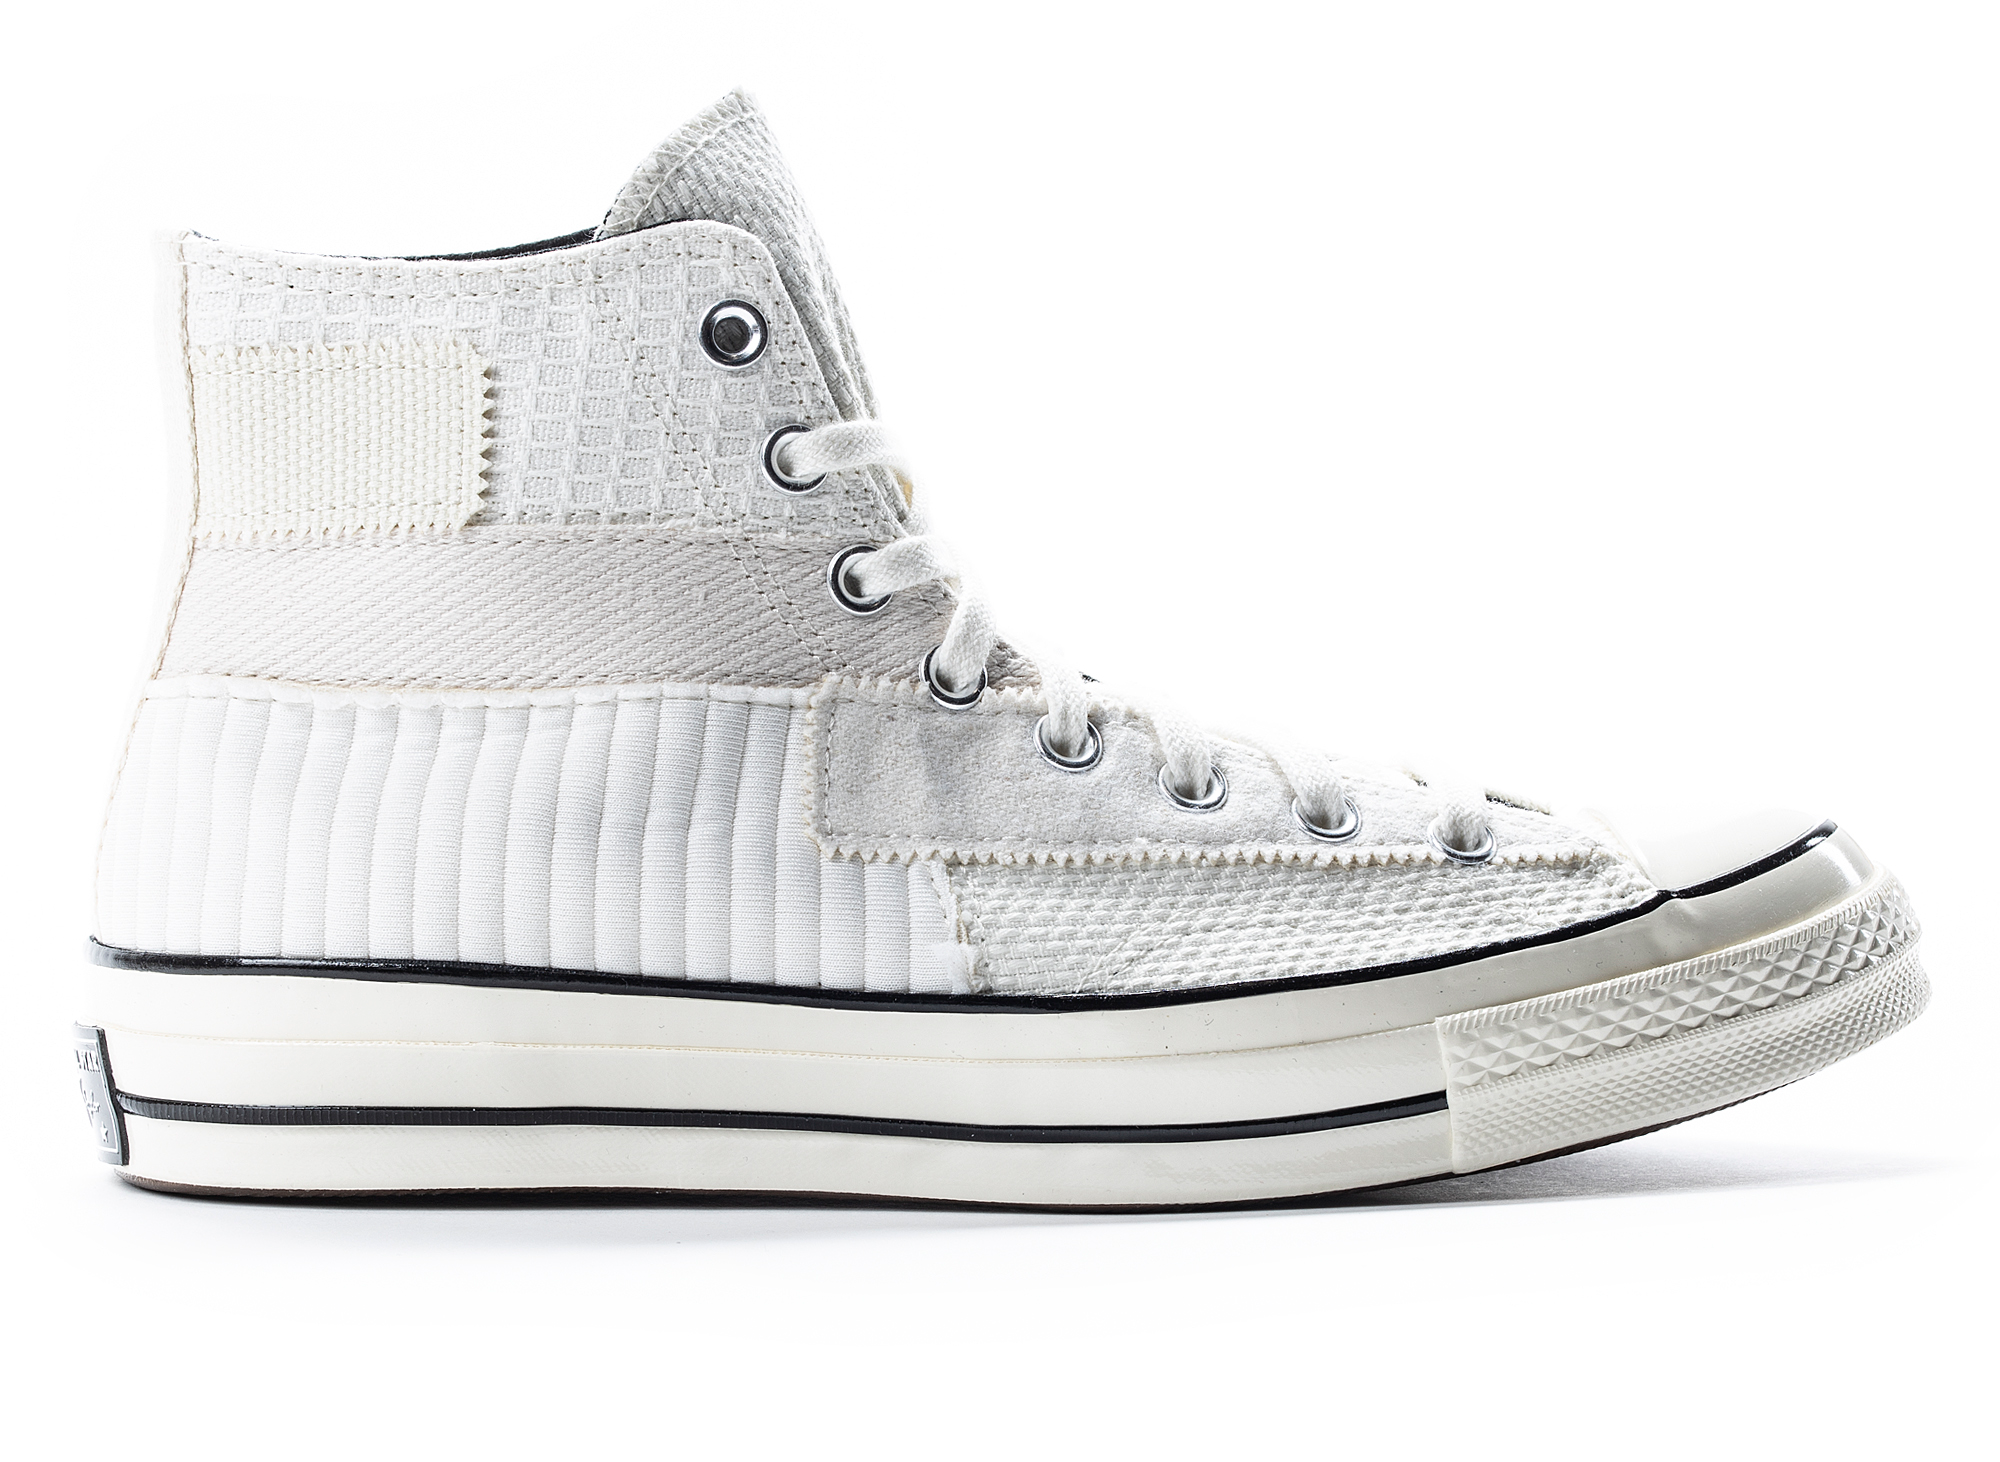 Converse 70 Hi Patchwork in Cream